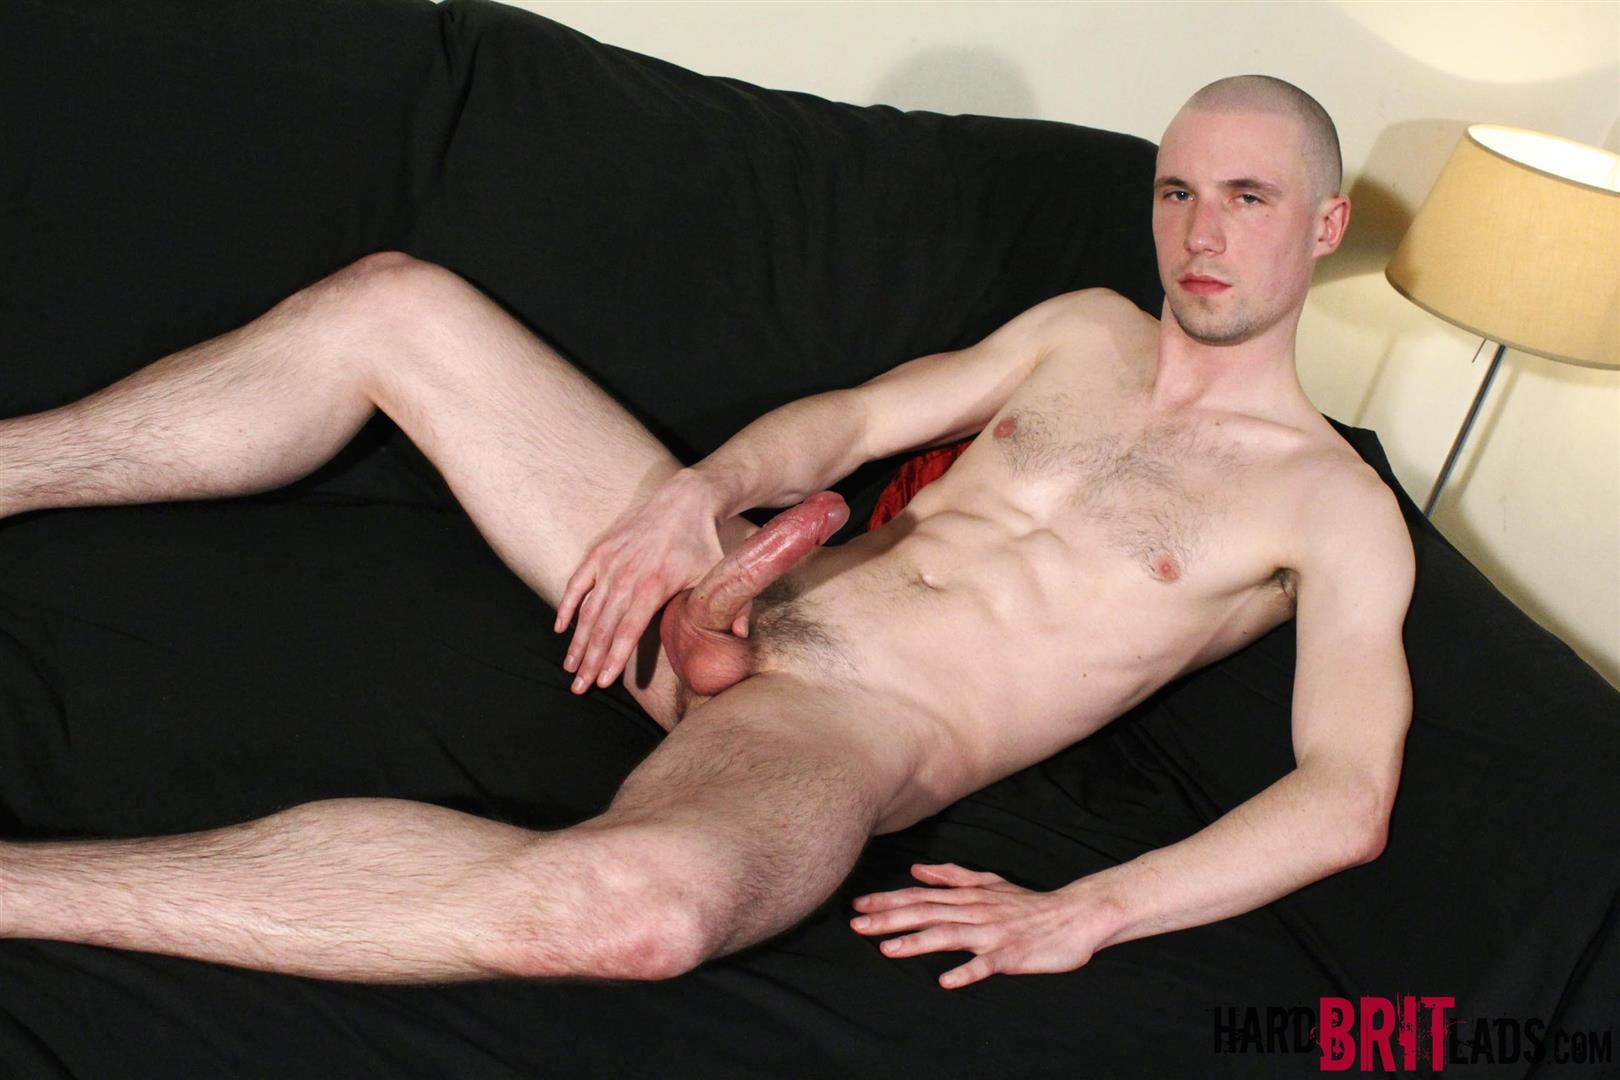 Hard Brit Lads Jason Domino Naked Skinhead With Big Uncut Cock Jerk Off Amateur Gay Porn 08 British Skinhead Jerking Off His Big Uncut Cock